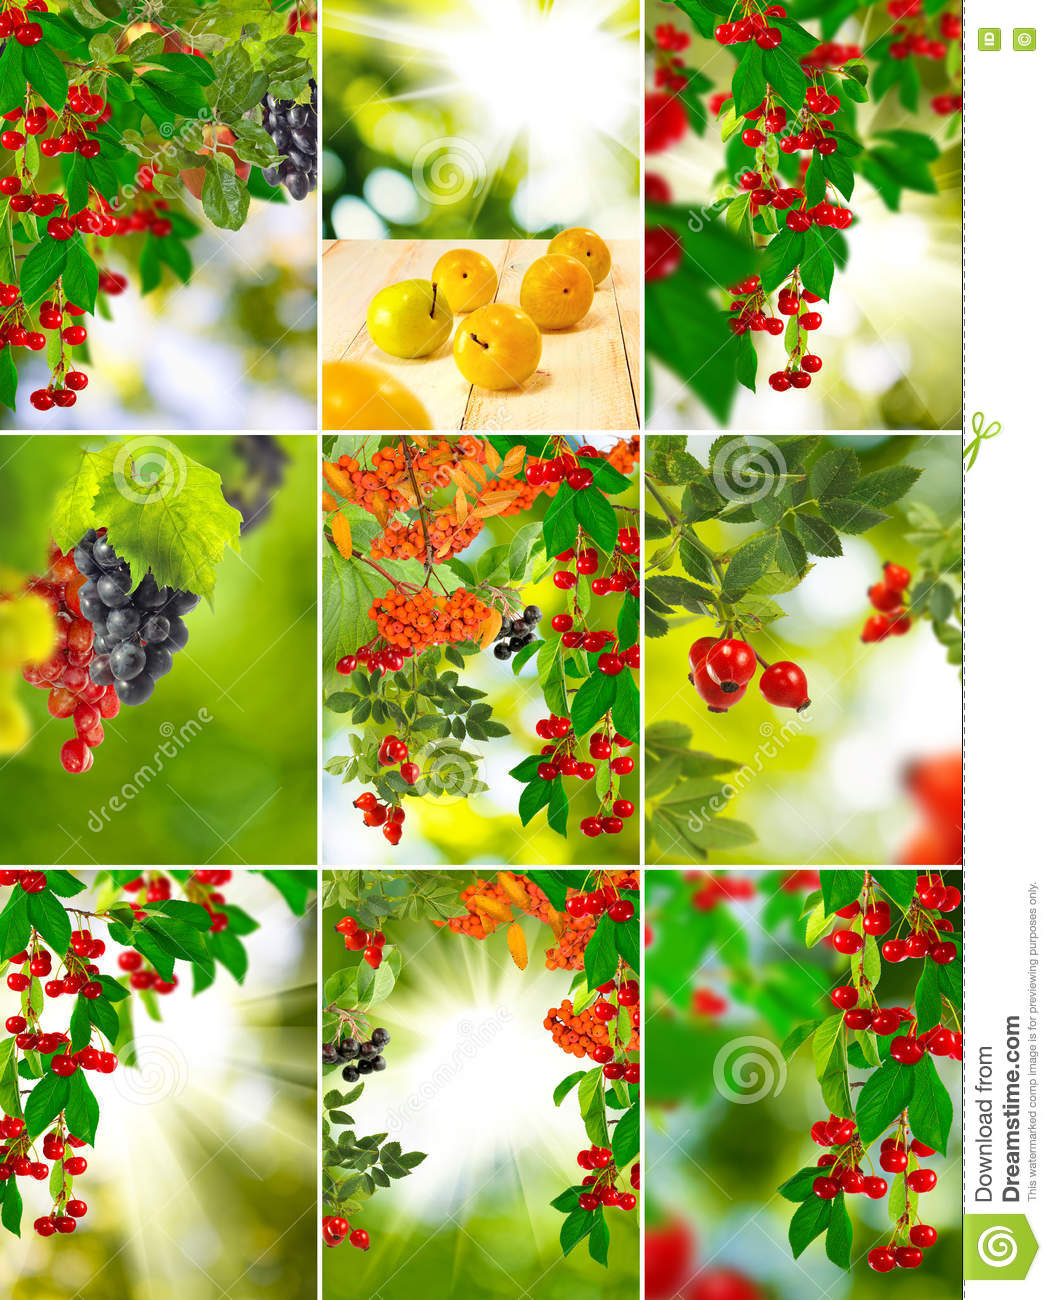 Image Of Fruit And Flowers In The Garden Close.